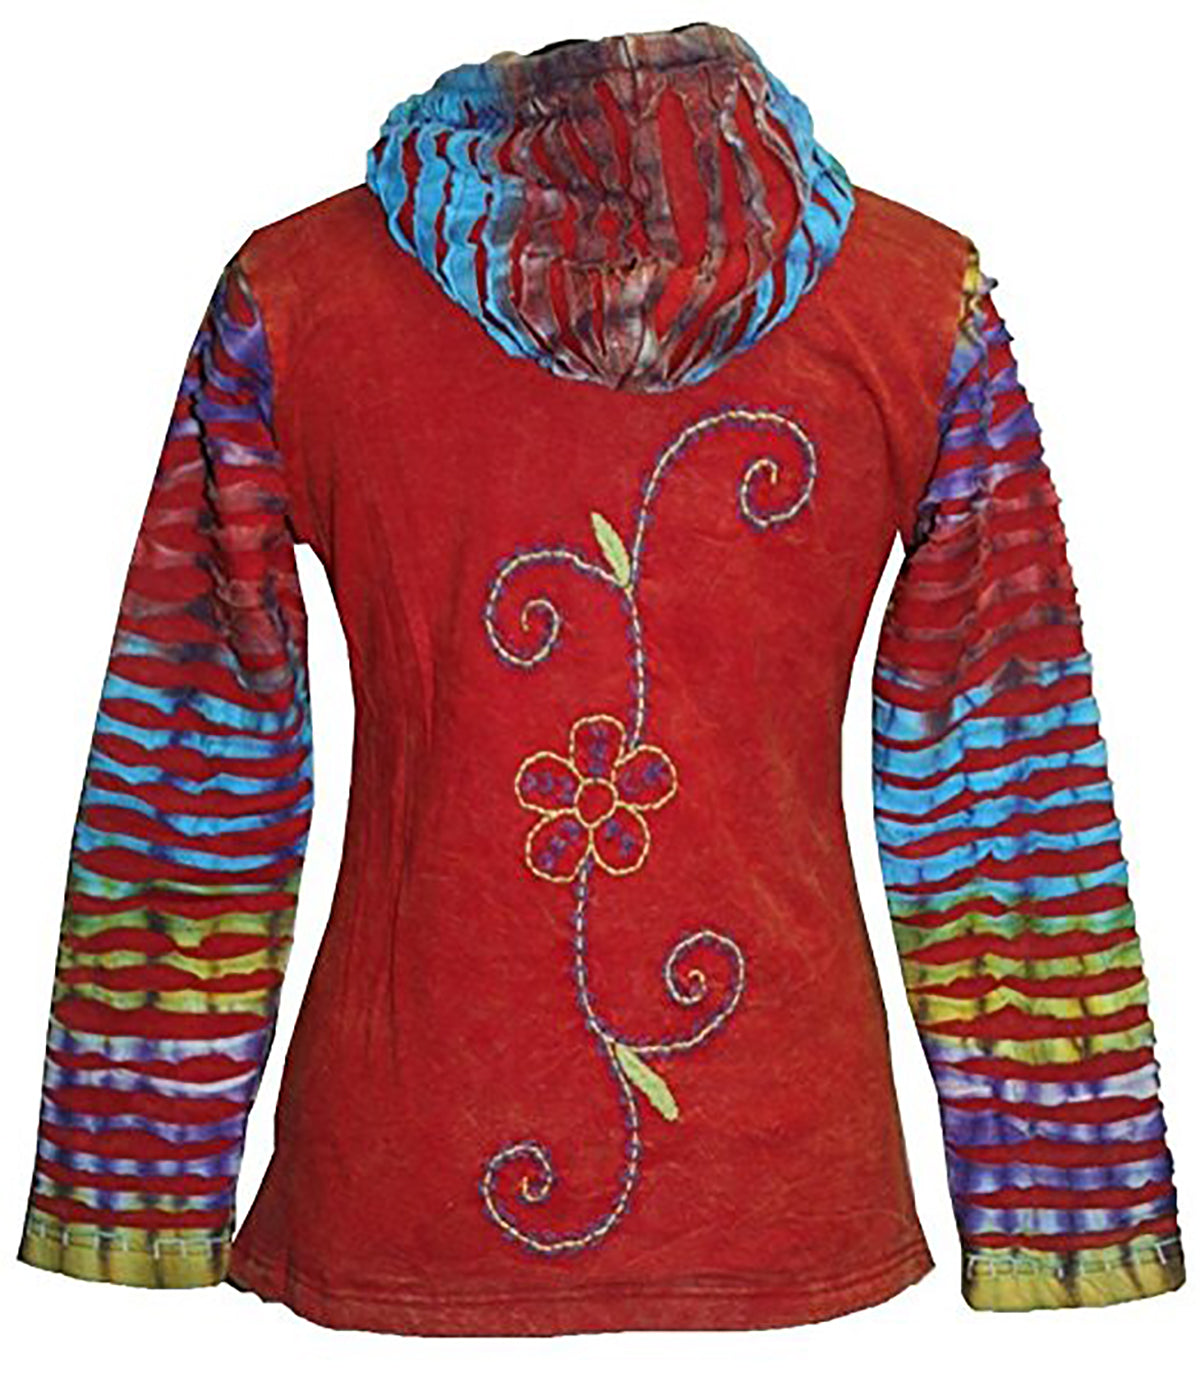 RJ 353 Rib Cotton Rainbow Arc Tie-Dye Bohemian hoodie Jacket